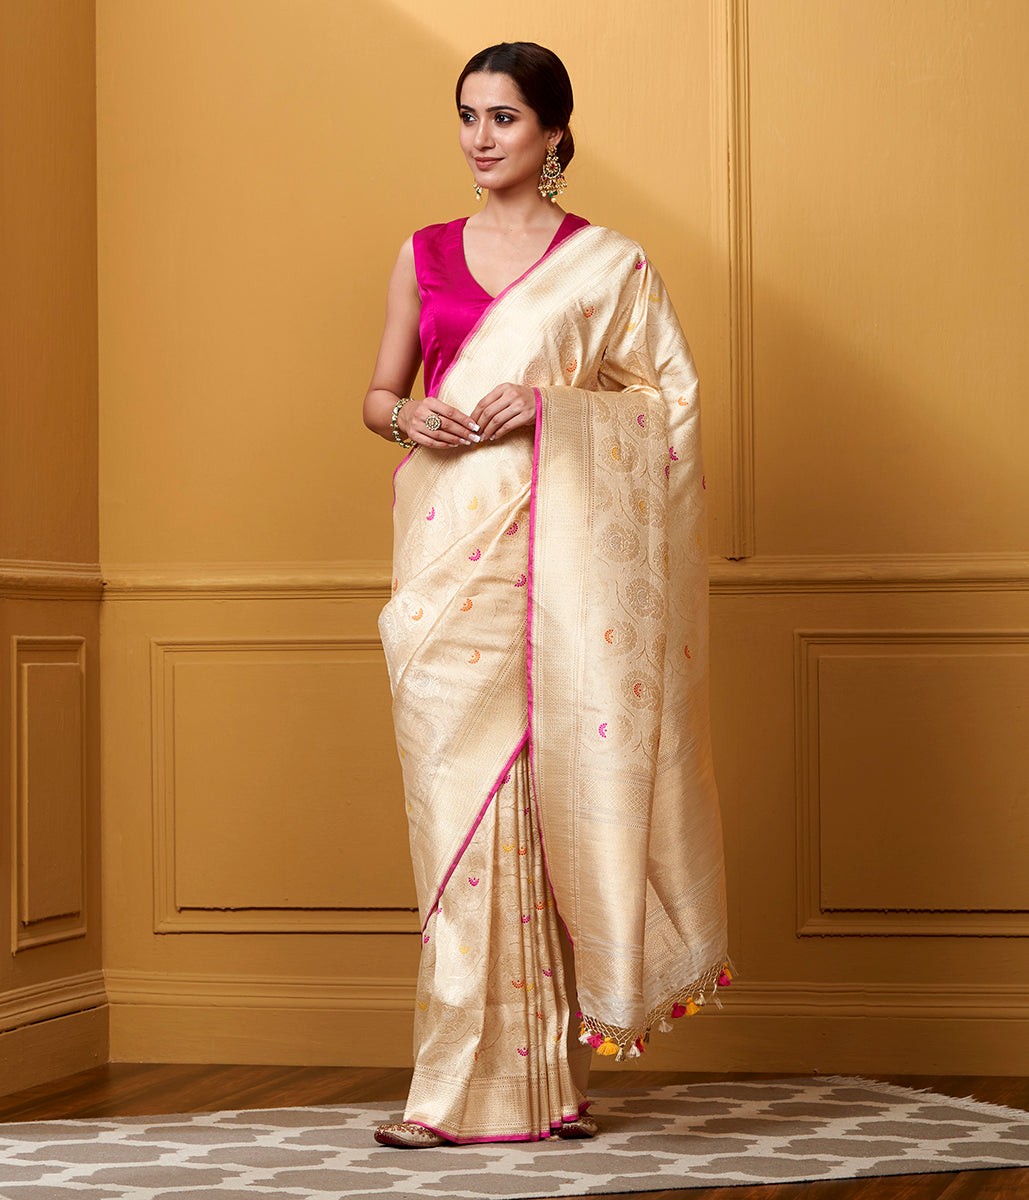 Handwoven Cream and Gold Meenakari Kimkhab Saree